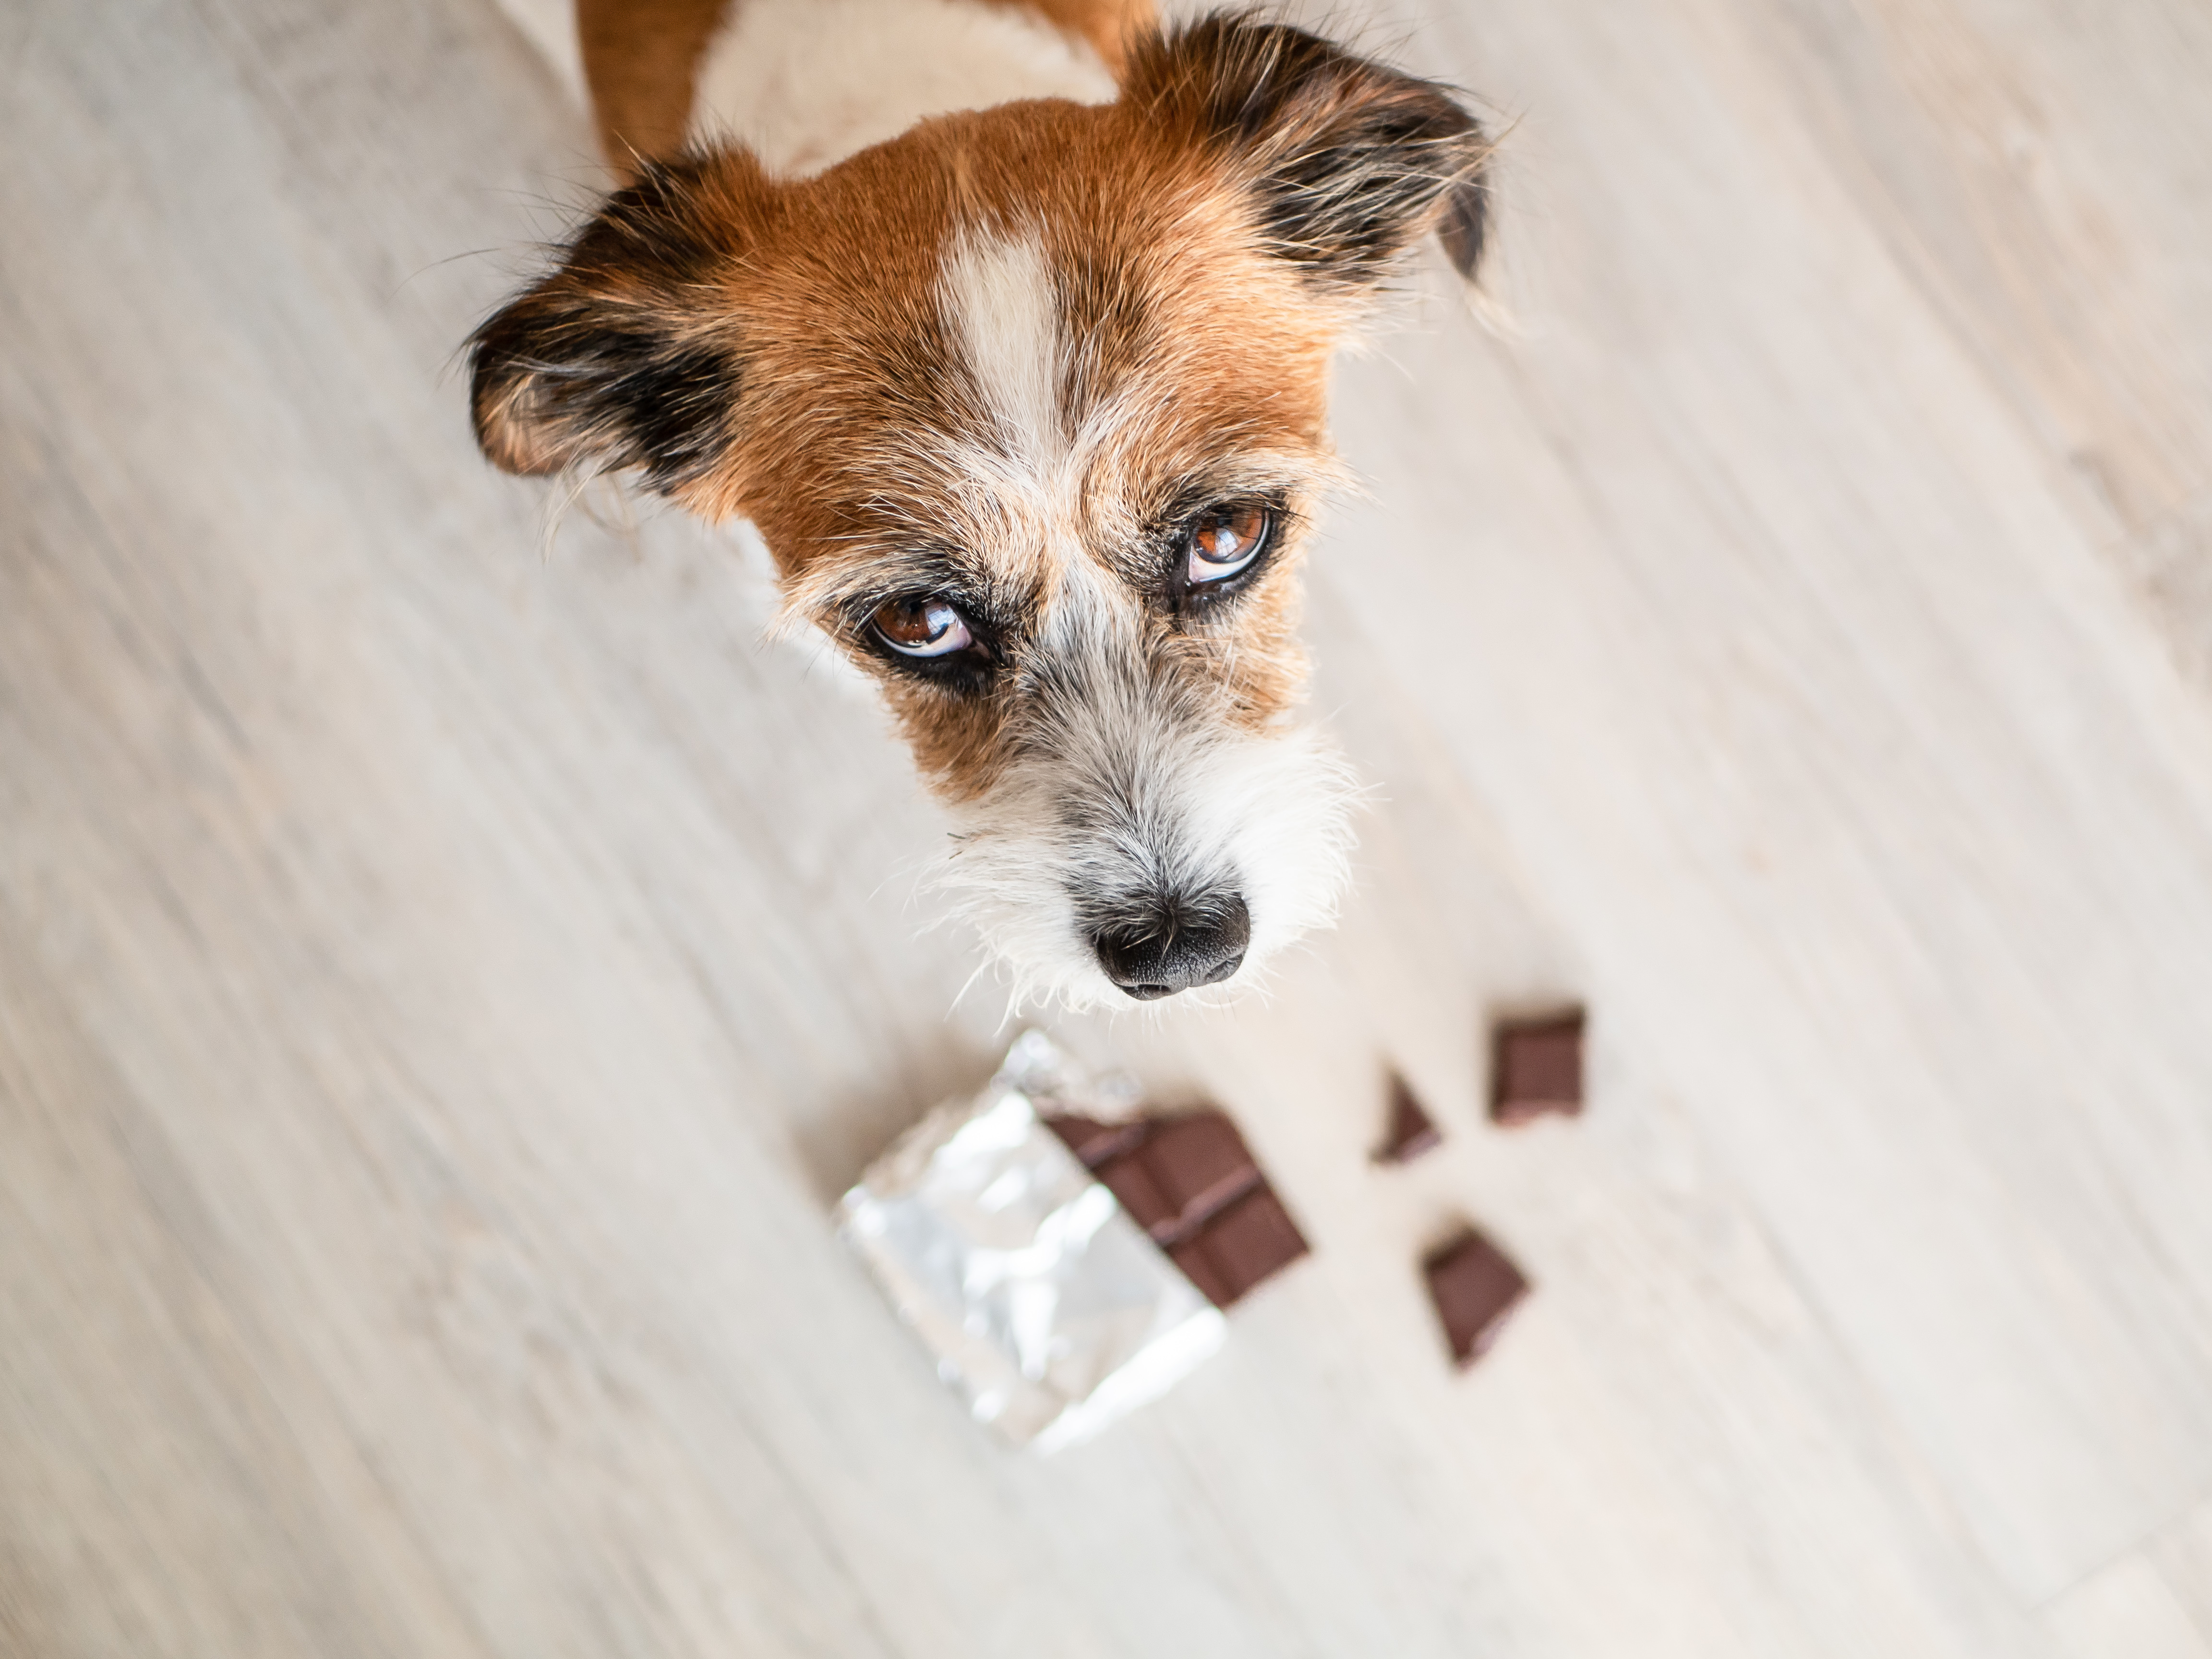 Why chocolate is an unsavoury treat for your dog